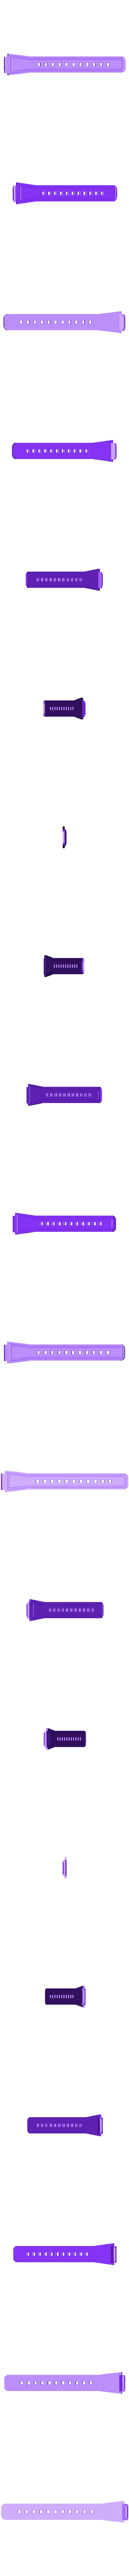 correa_casio_con_corte.STL Download free STL file Casio Watch Band W-S210H G-Shock Type • 3D printable model, franhabas